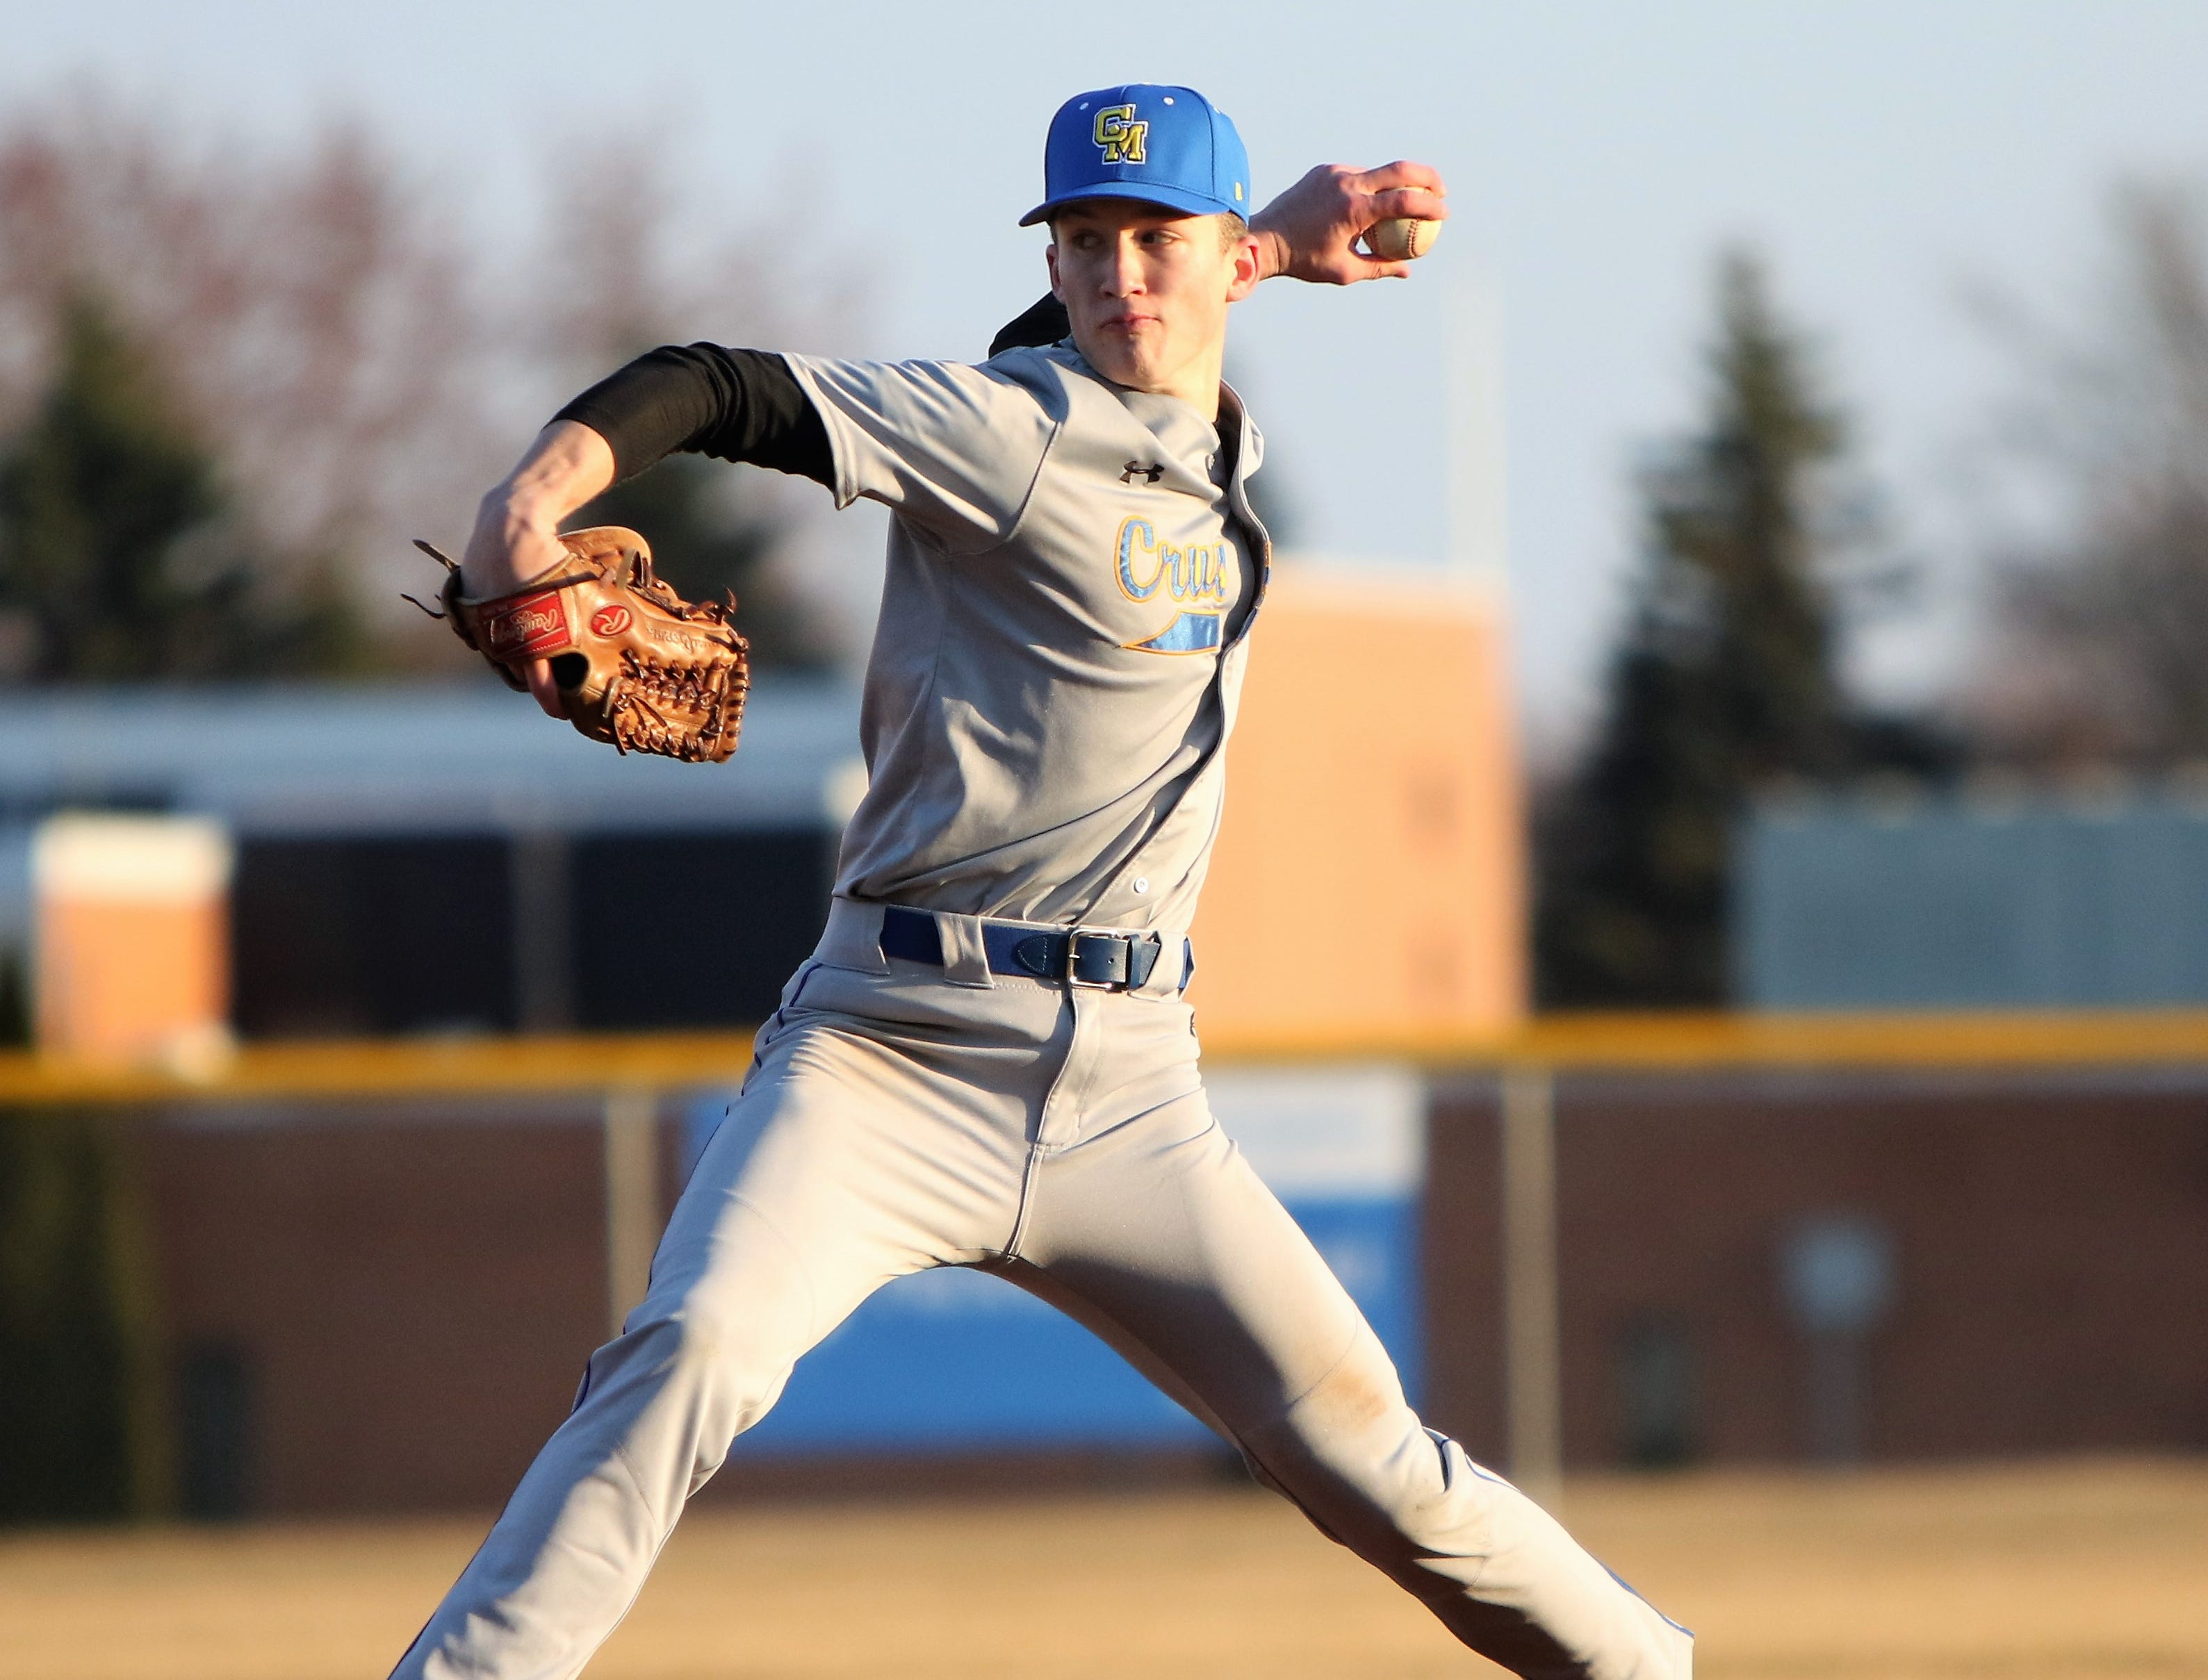 Catholic Memorial pitcher Luke Fox delivers a pitch against Arrowhead on April 2, 2019.